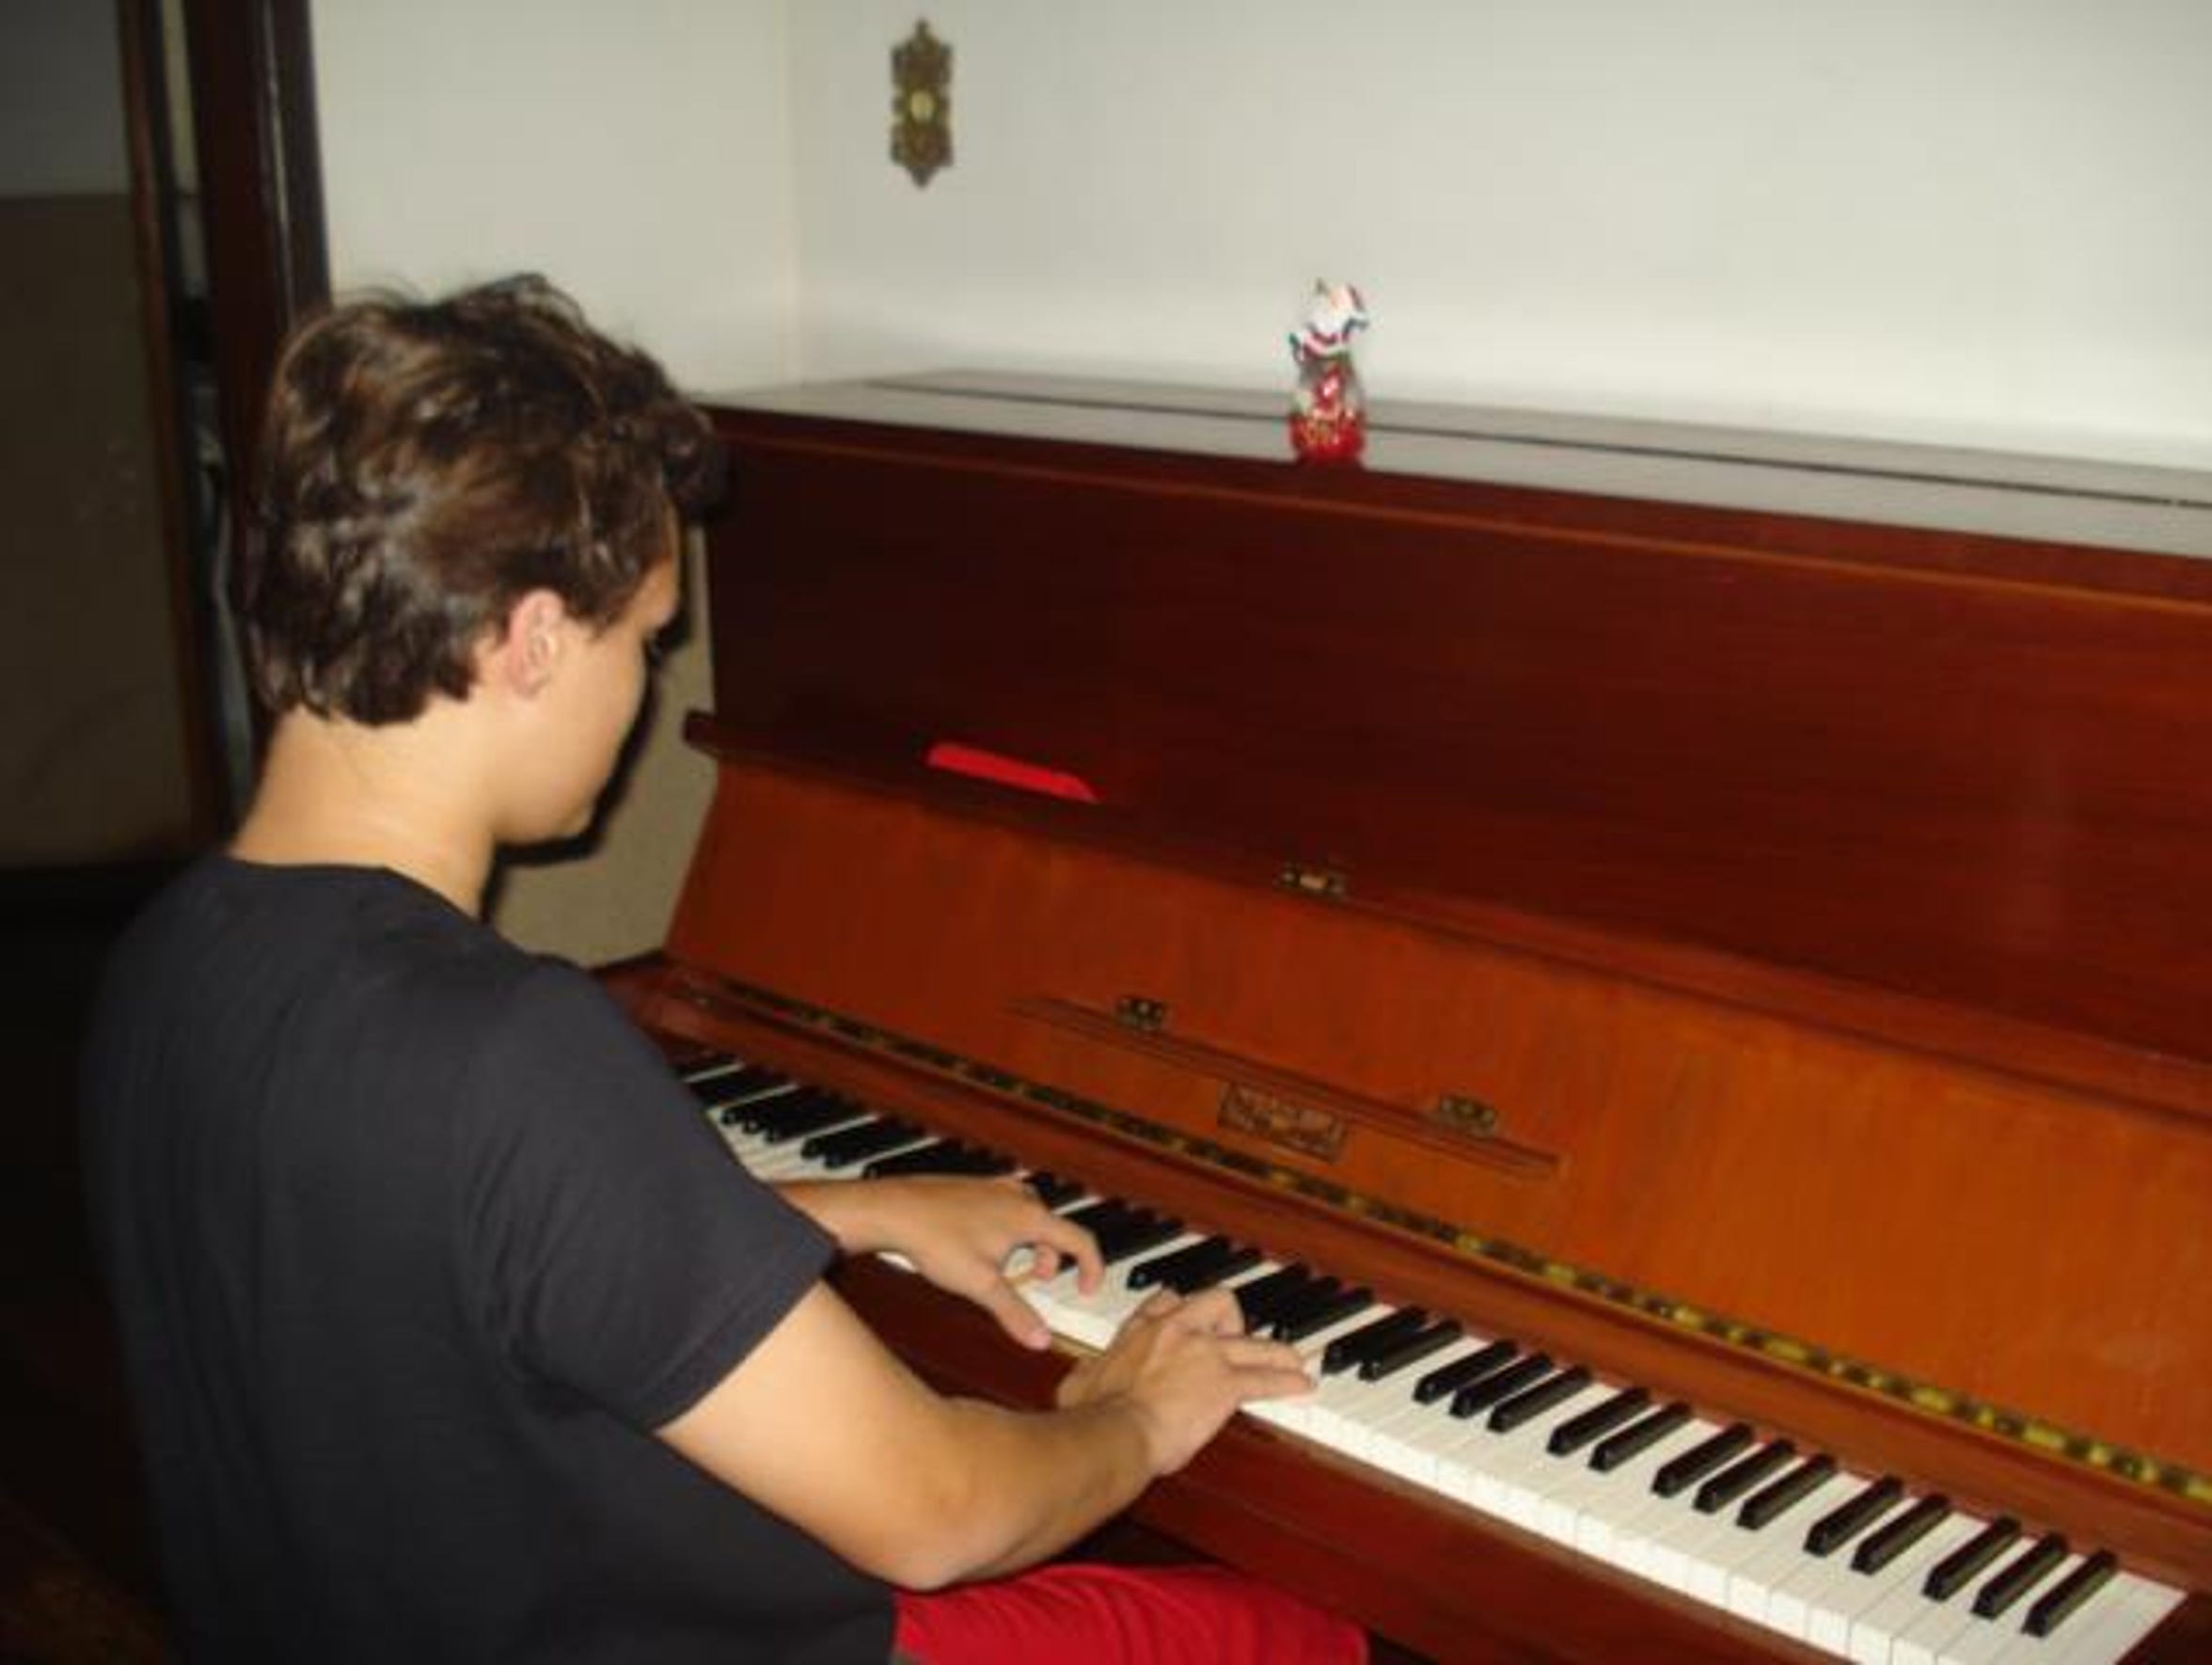 Rafael Pereira plays his new piano that he bought by